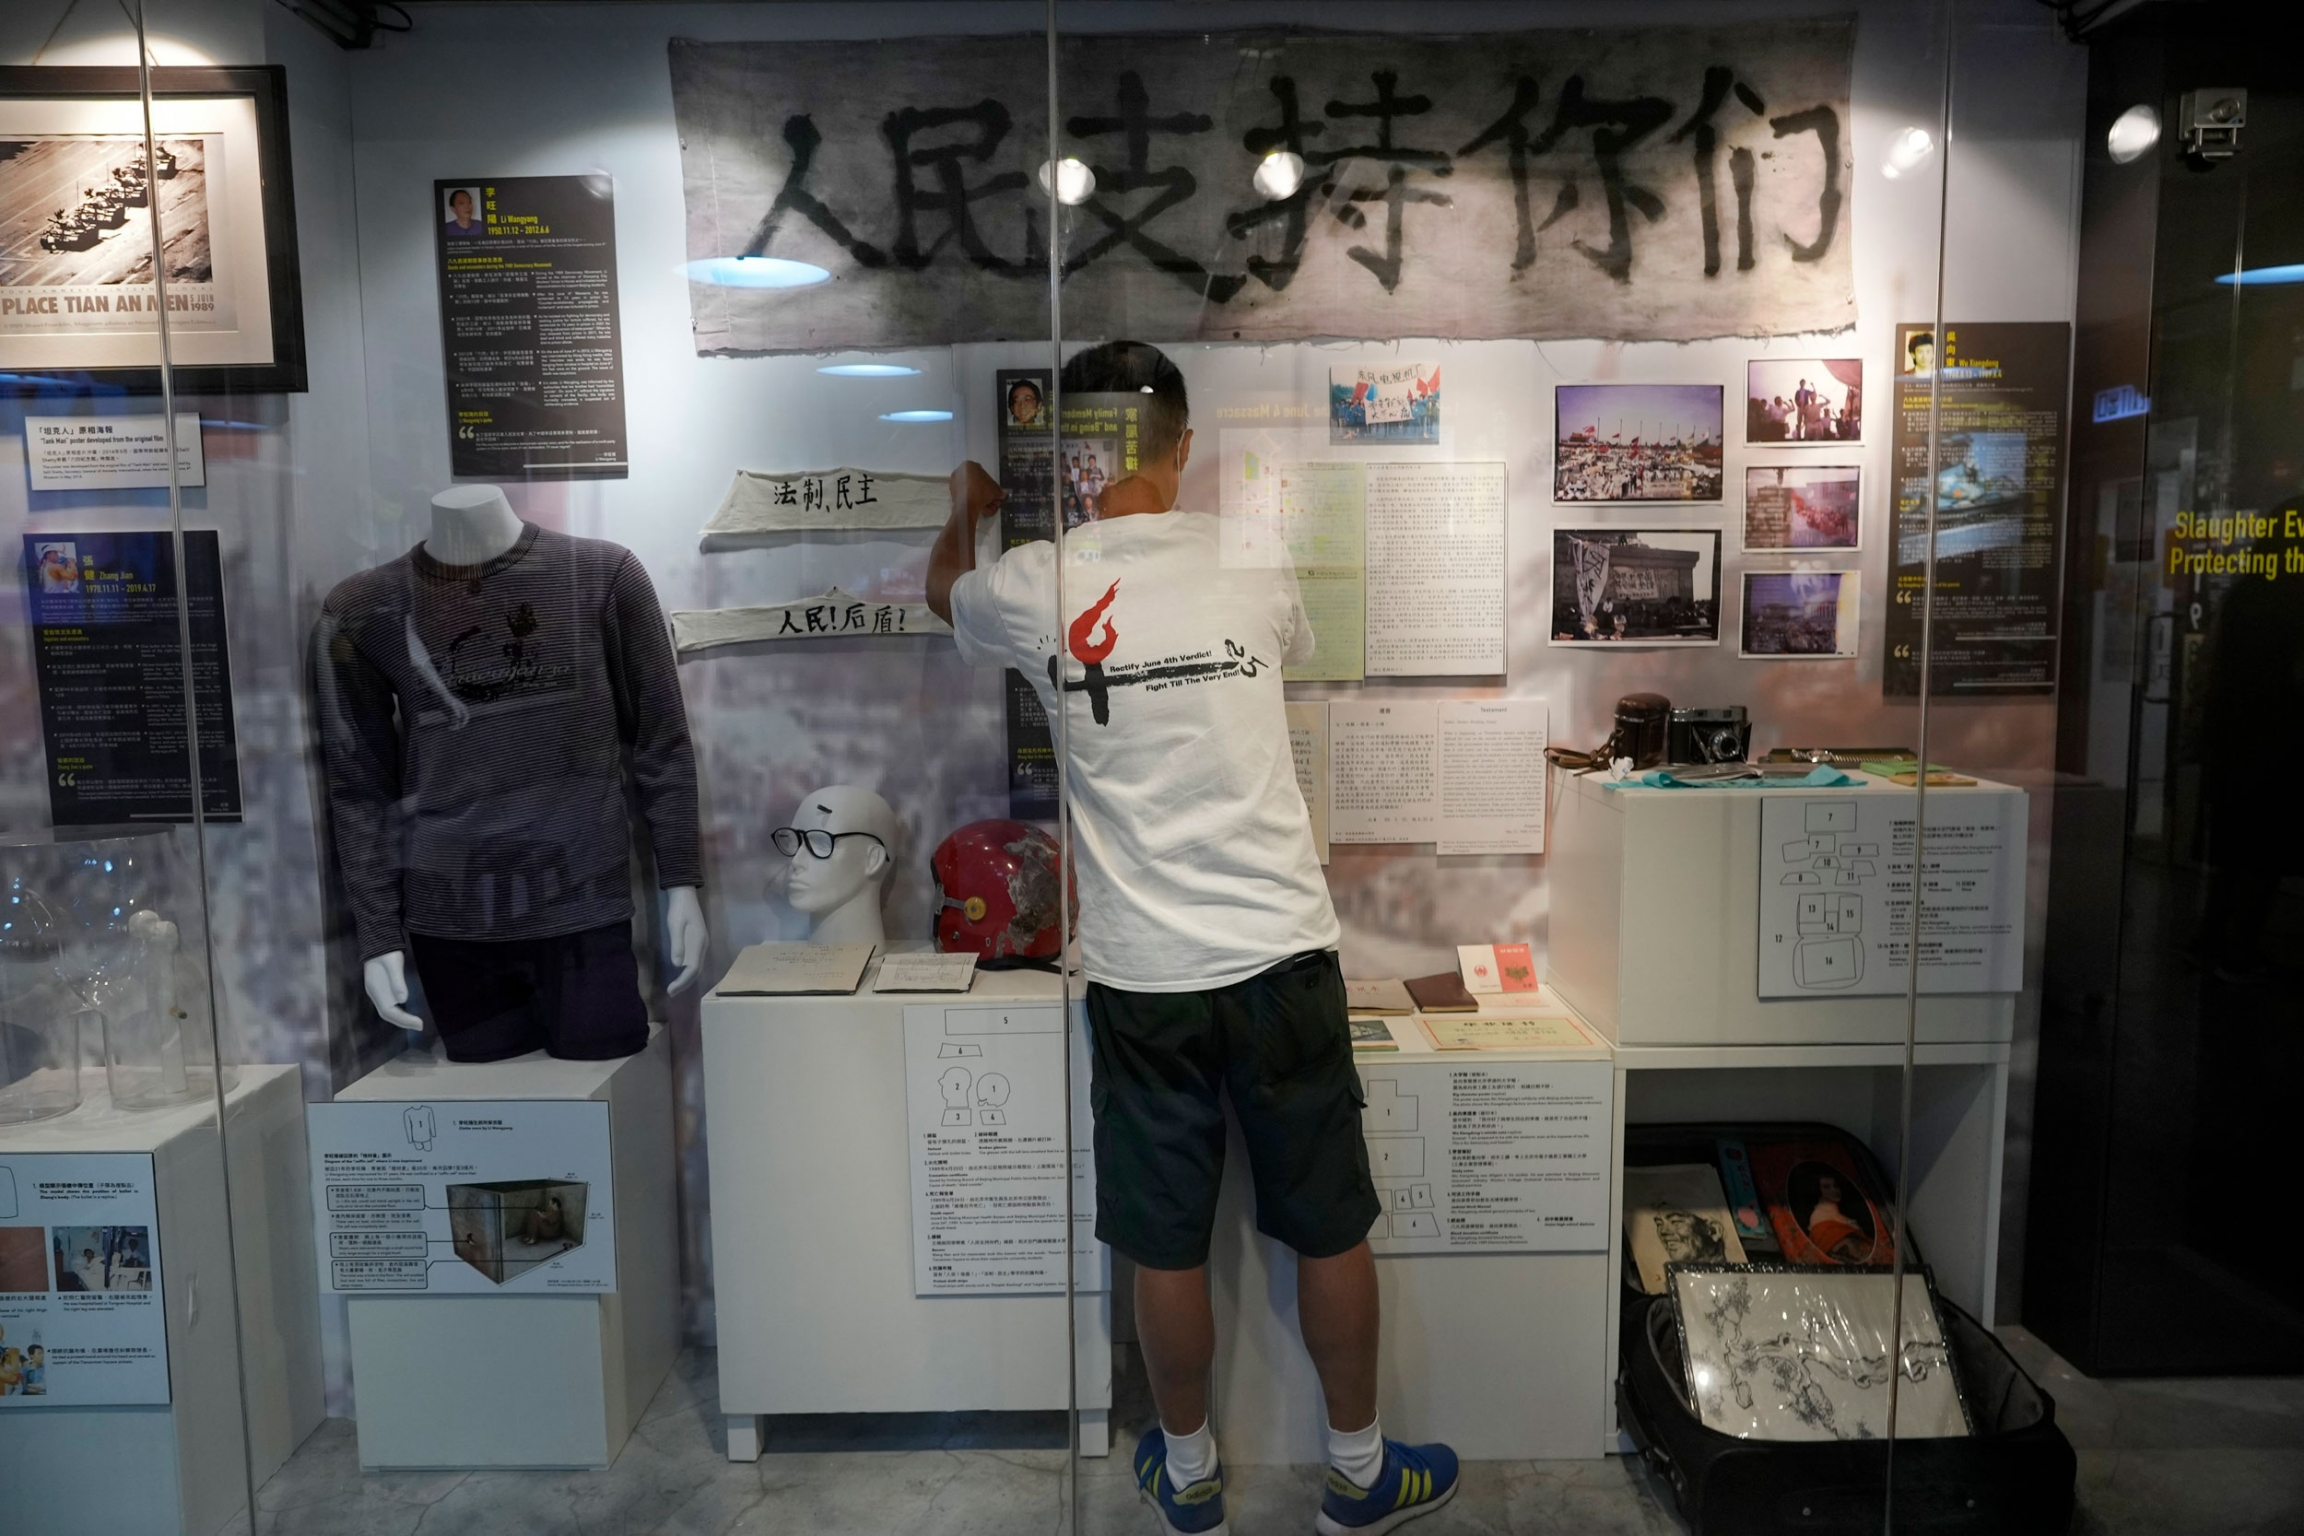 A man is shown wearing shorts and a t-shirt and standing in front of Tiananmen Square artifacts both hanging on the wall and on a mannequin.